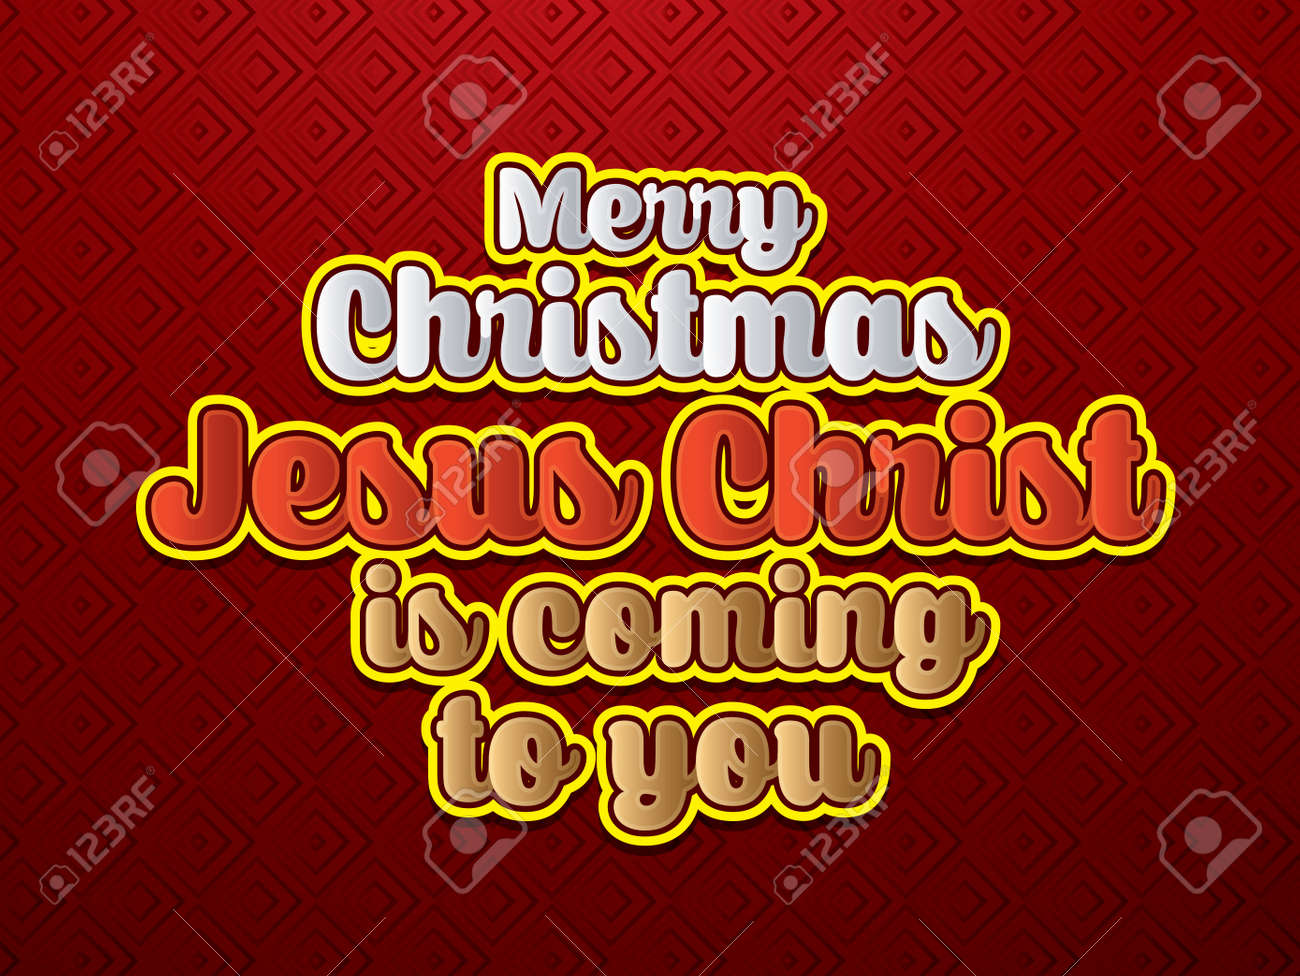 Merry Christmas Jesus.Merry Christmas Jesus Christ Is Coming To You Font Designed